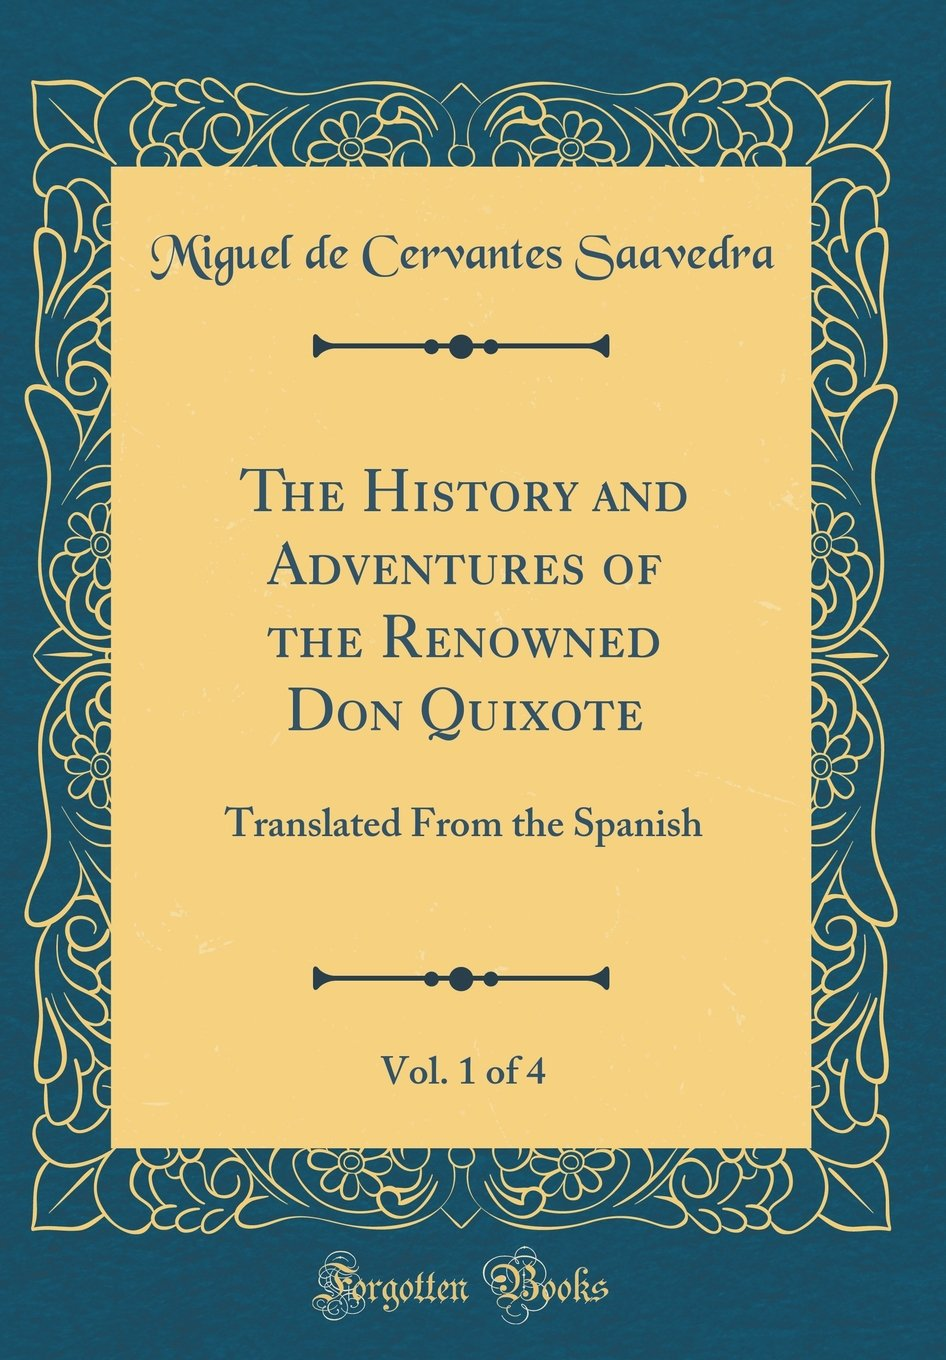 Download The History and Adventures of the Renowned Don Quixote, Vol. 1 of 4: Translated From the Spanish (Classic Reprint) ebook